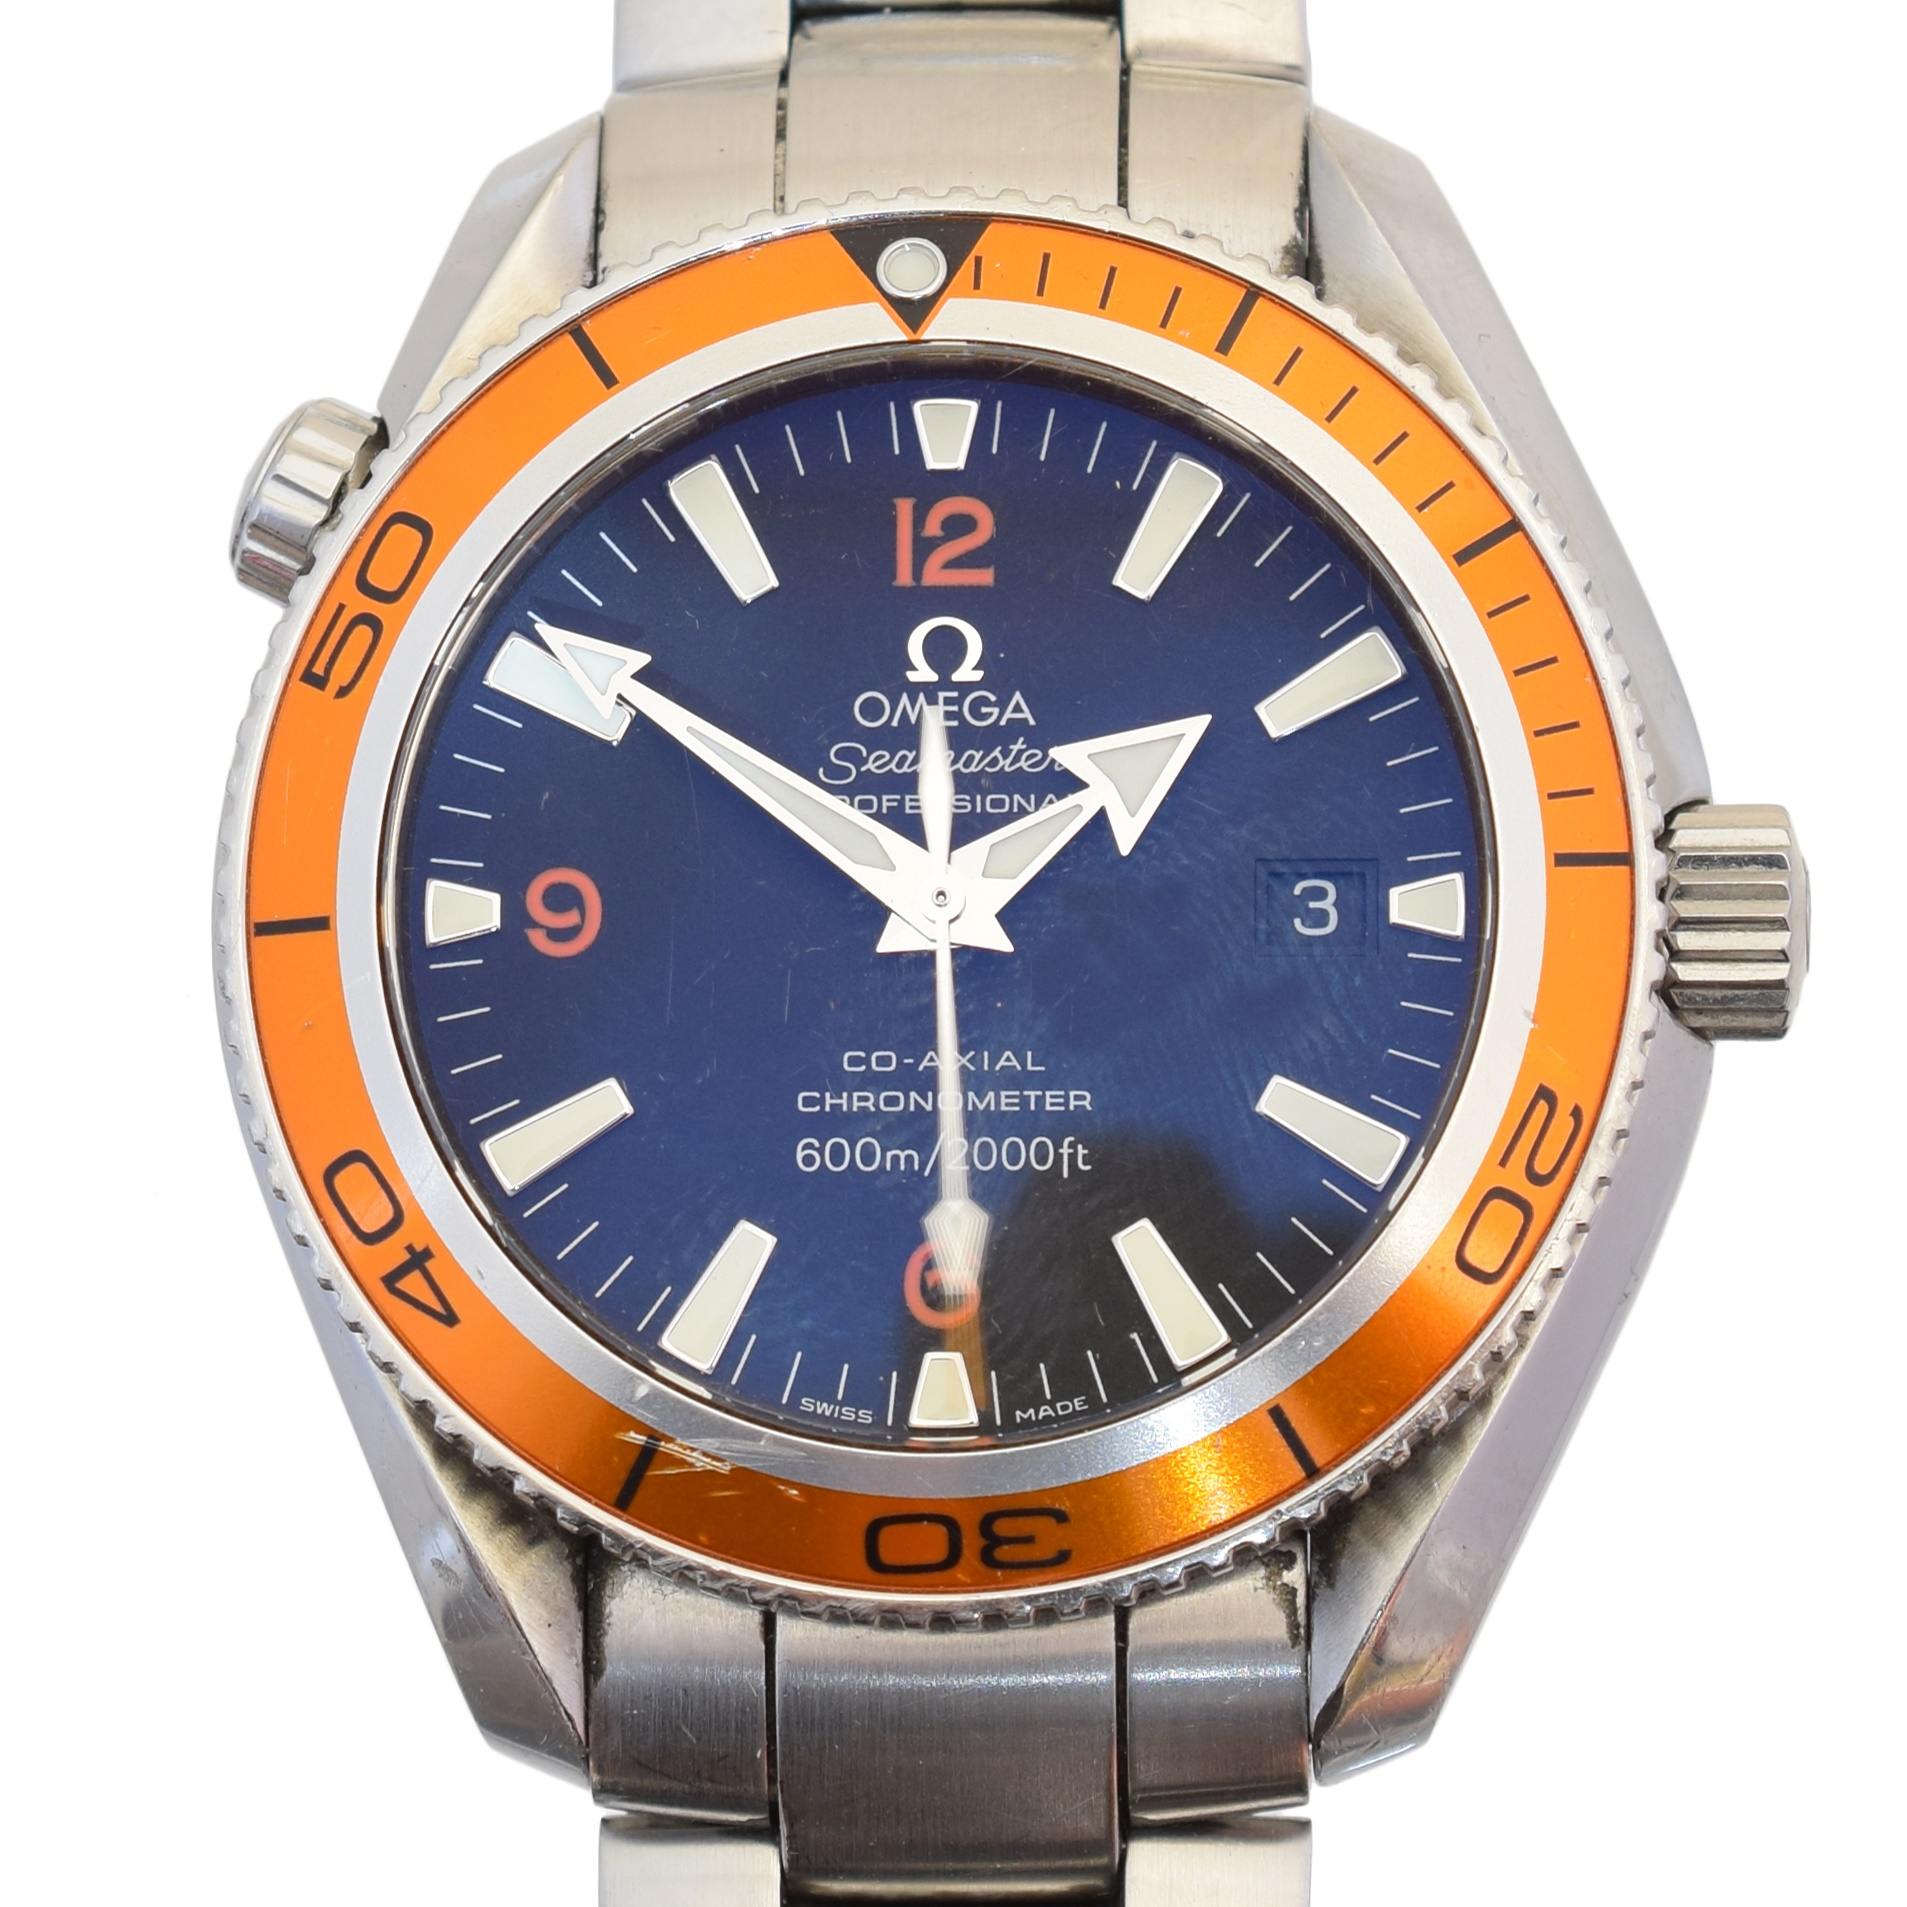 A stainless steel Omega Seamaster Planet Ocean watch, circa 2006, ref. 22095000, the circular black signed dial with orange arabic quarter markers and baton hour markers, with date aperture to 3 and orange bezel, automatic movement cal. 2500, serial no. 80949140, with stainless steel bracelet and folding clasp, case diameter 43mm. With maker's box, booklet and international warranty cards. Sold for £2,318